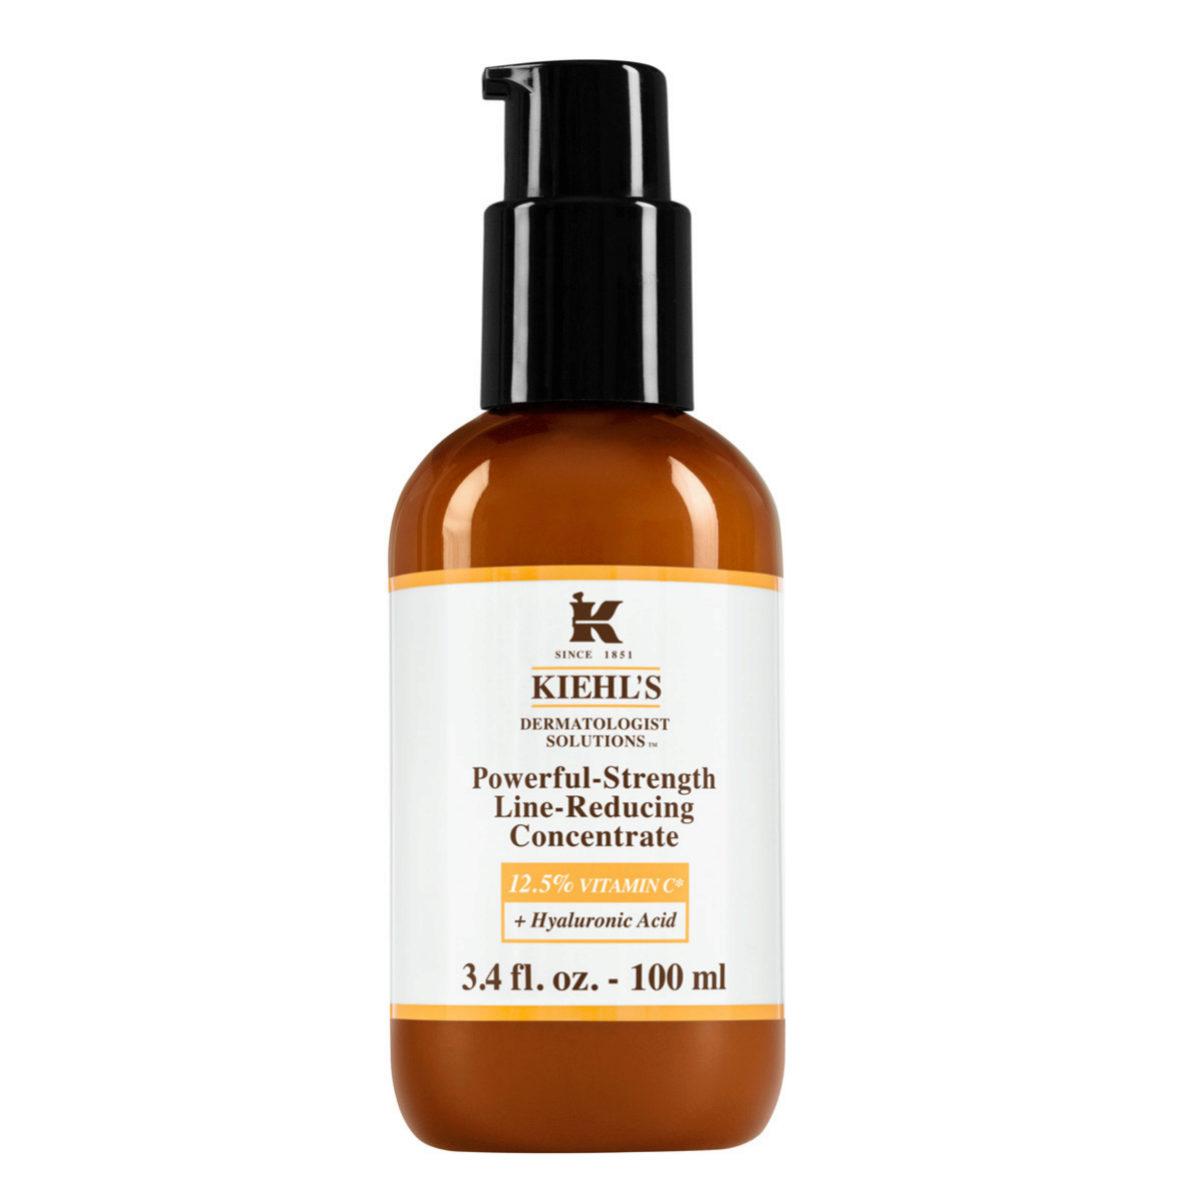 Powerful-Strength Line-Reducing Concentrate Kiehls, al 12,5% y con...